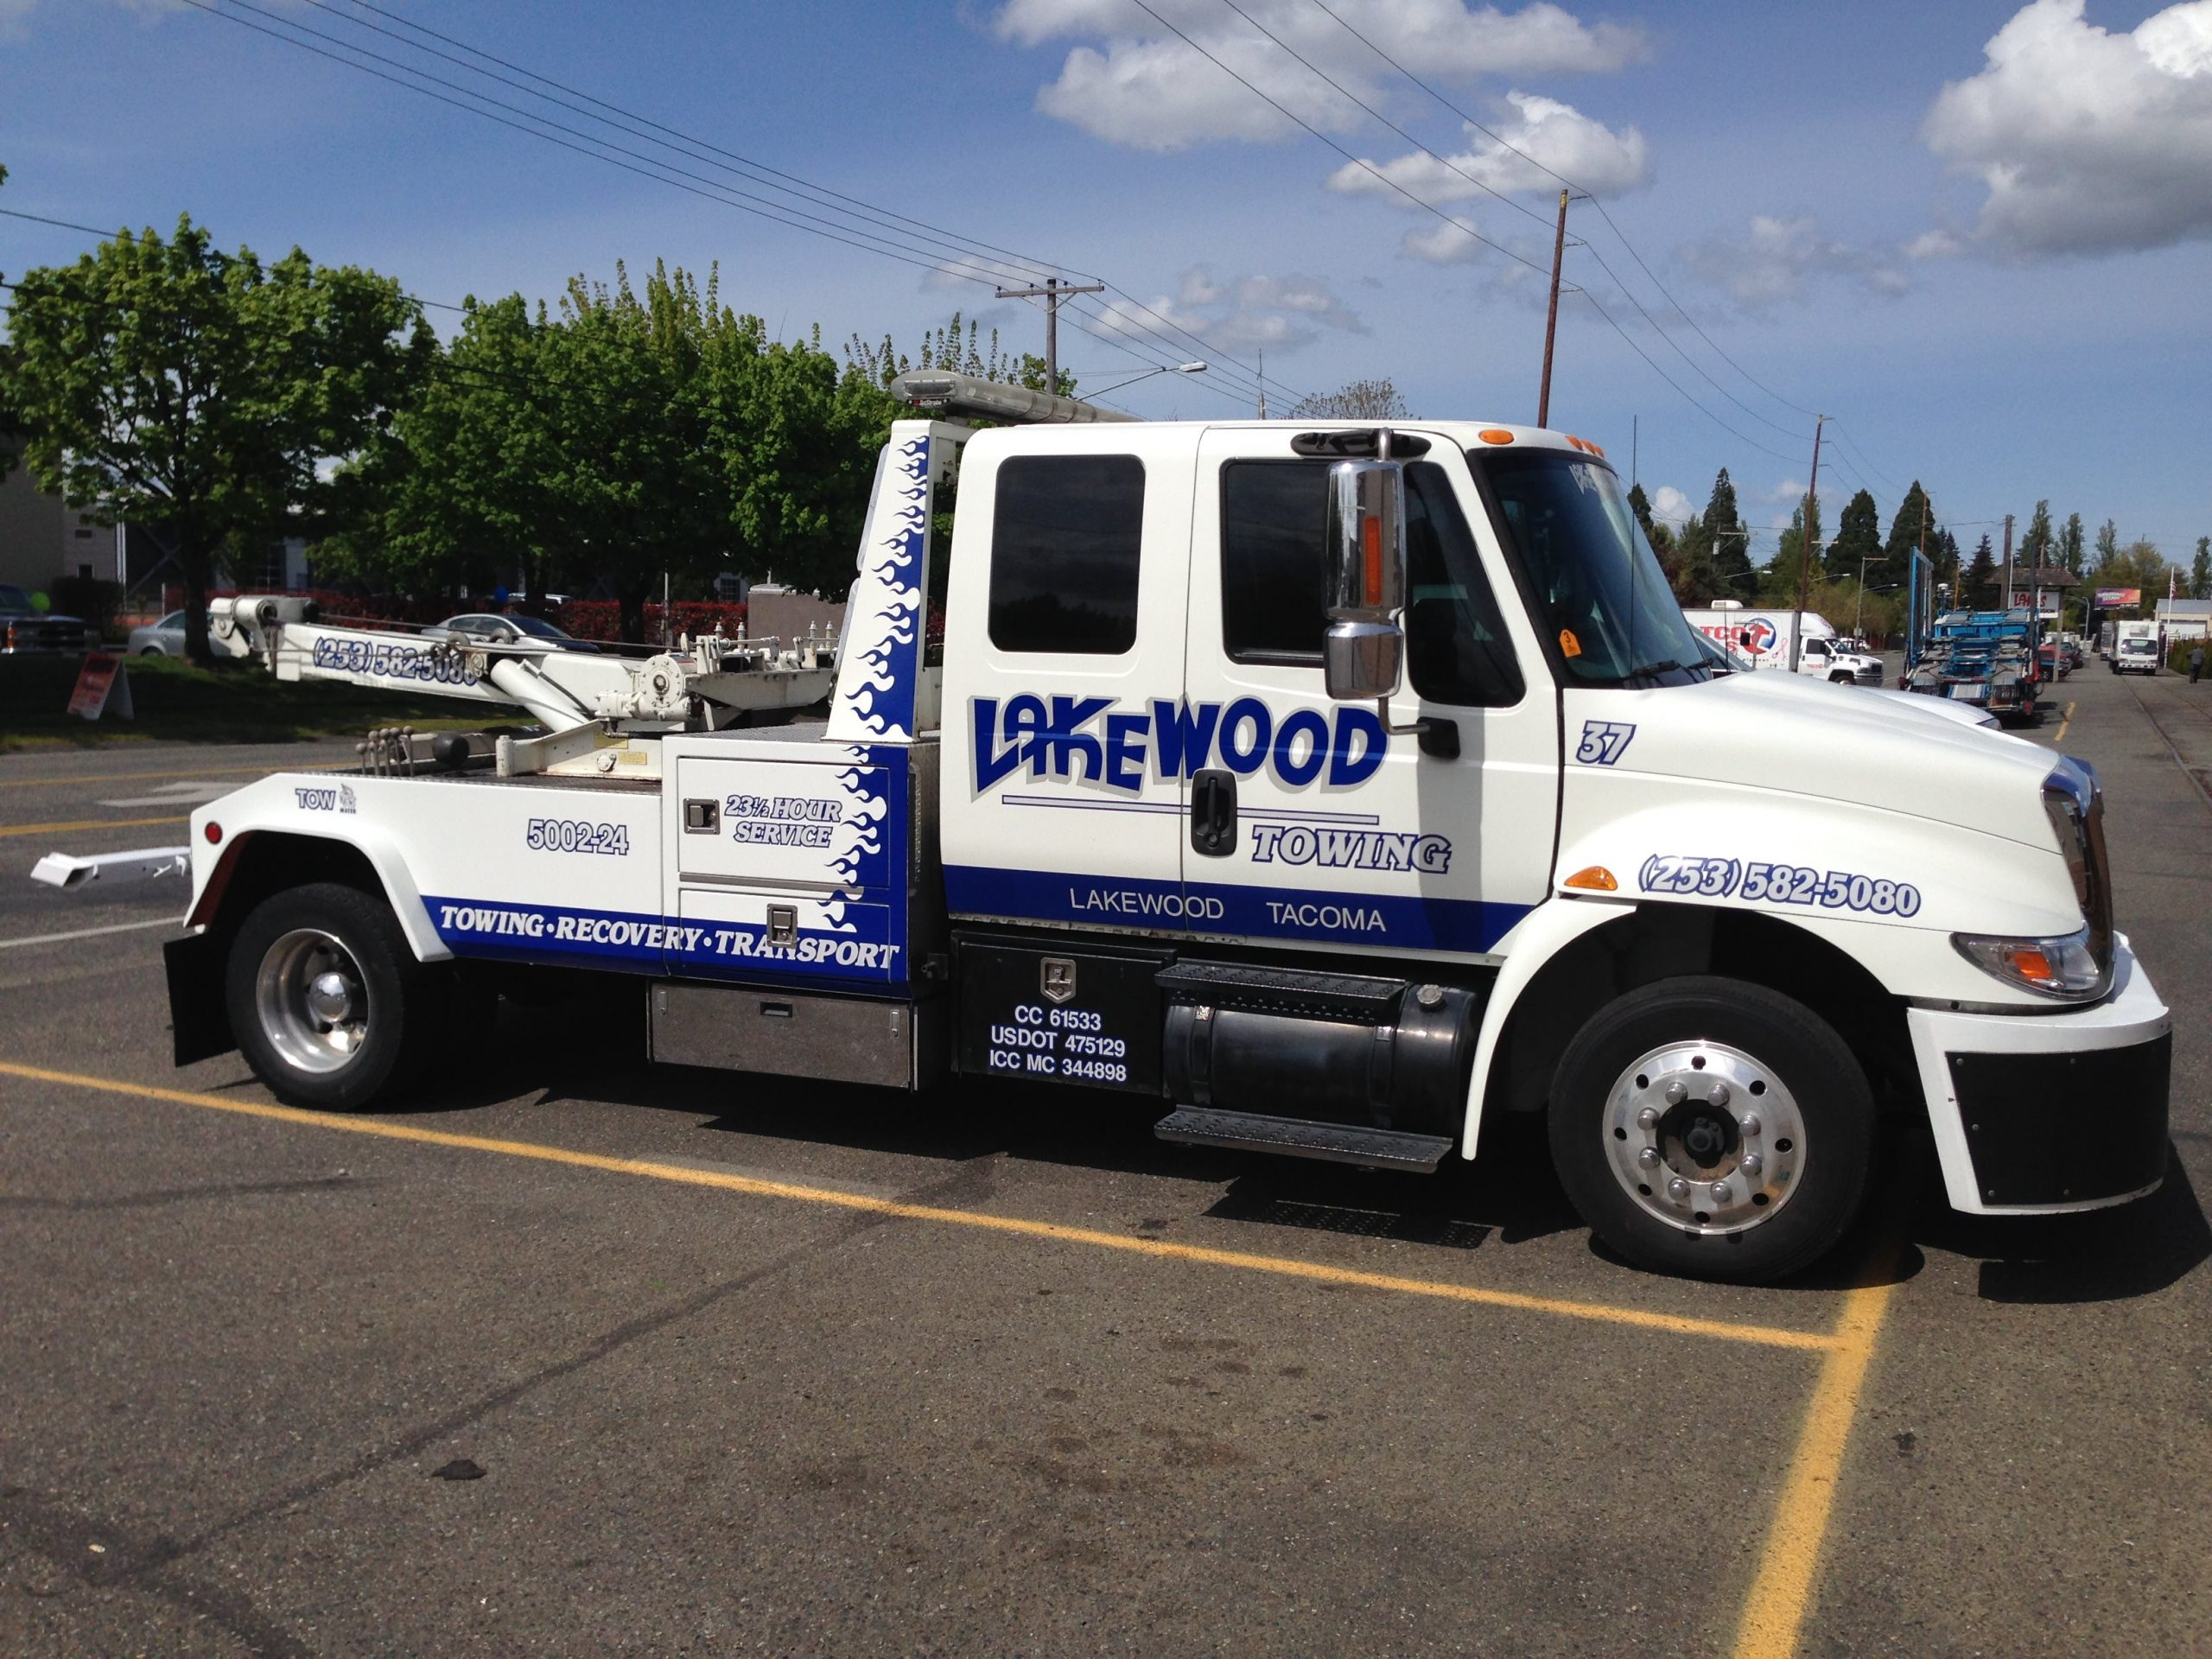 Lakewood Towing & Transport